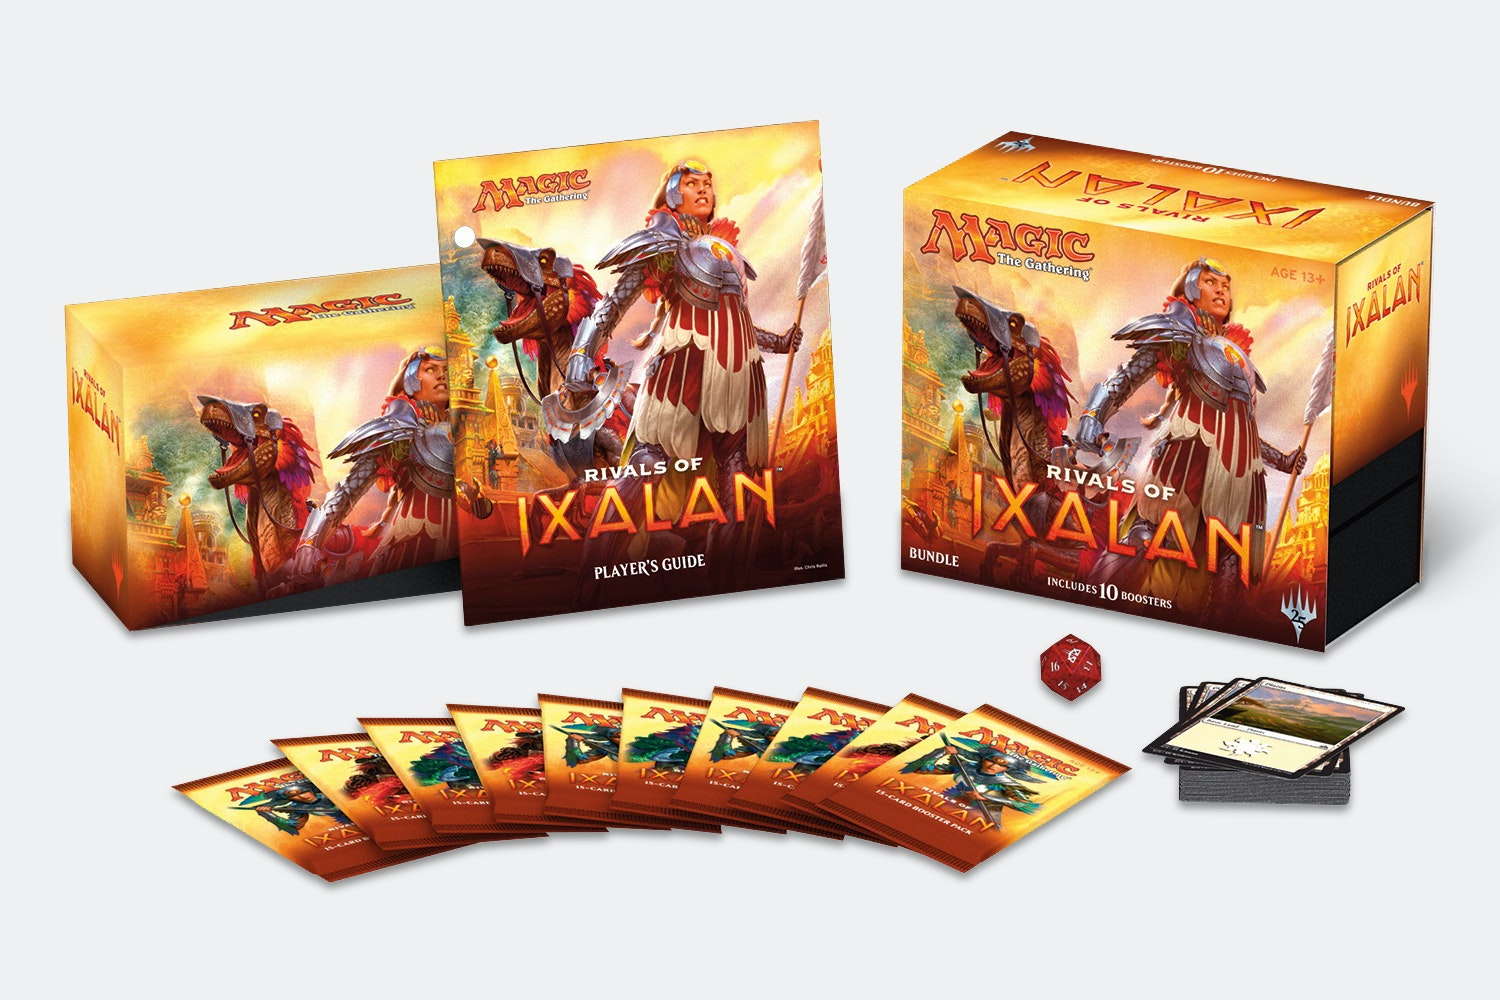 Rivals of Ixalan Fat-Pack Preorder